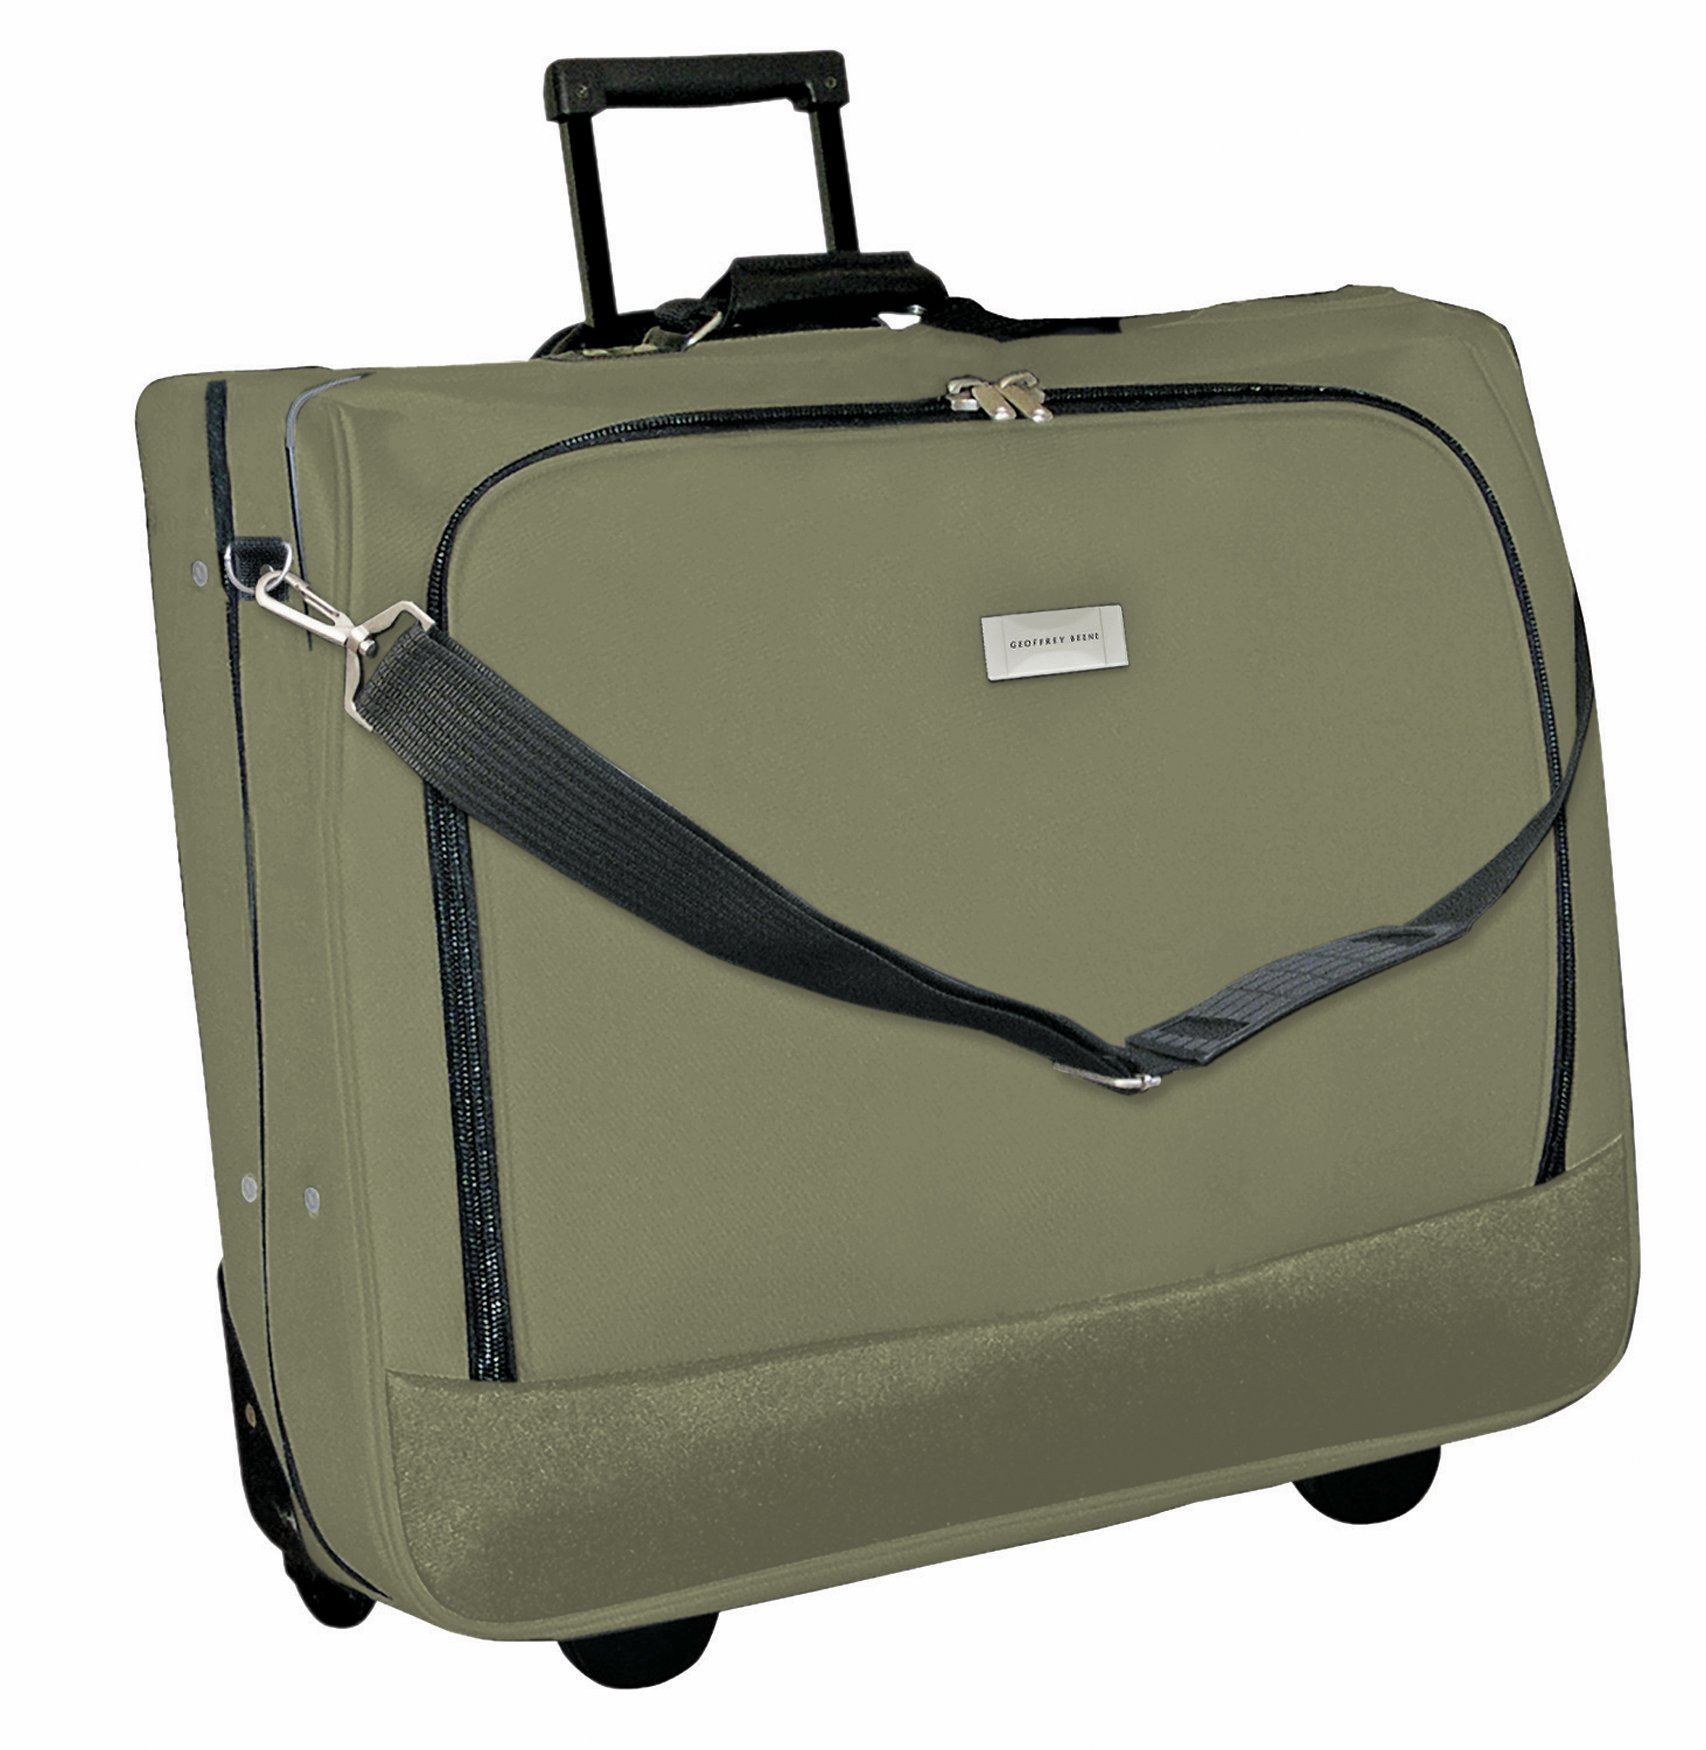 Get Quotations Geoffrey Beene Deluxe Rolling Garment Bag Travel Carrier With Wheels Olive Green